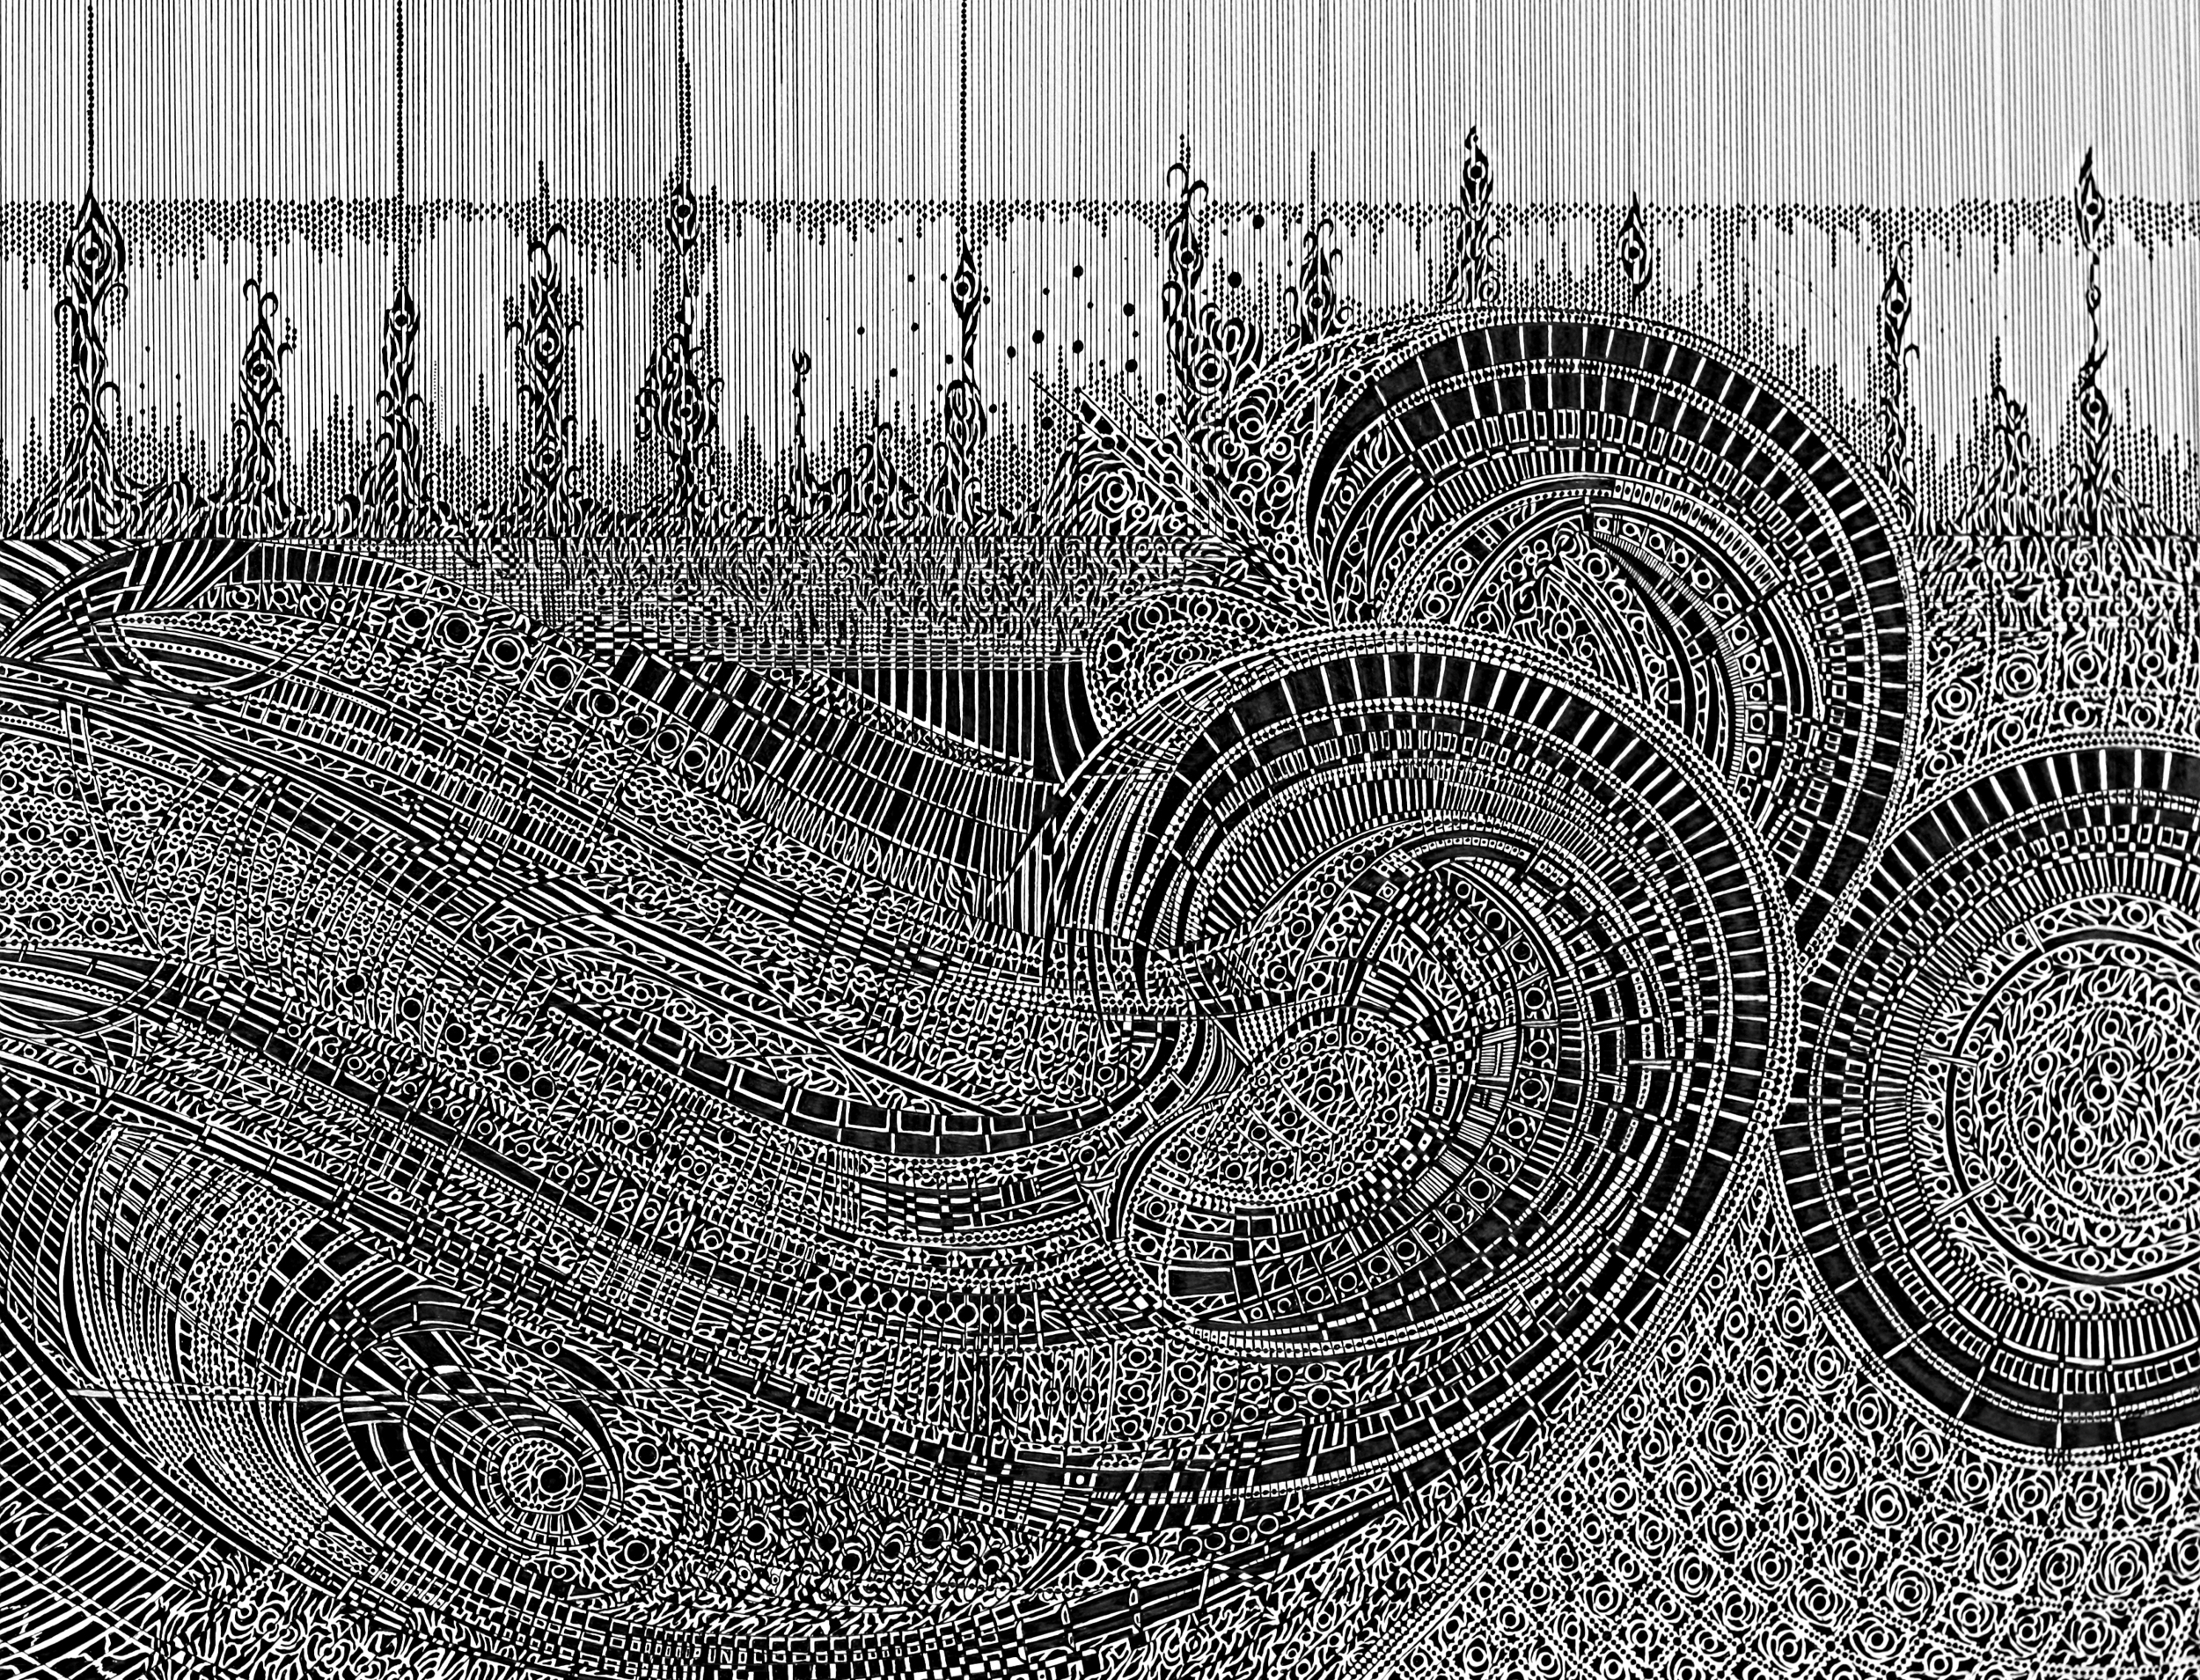 Impressions De La Mer - Movement 2 Ink Drawing by Anthony Wigglesworth